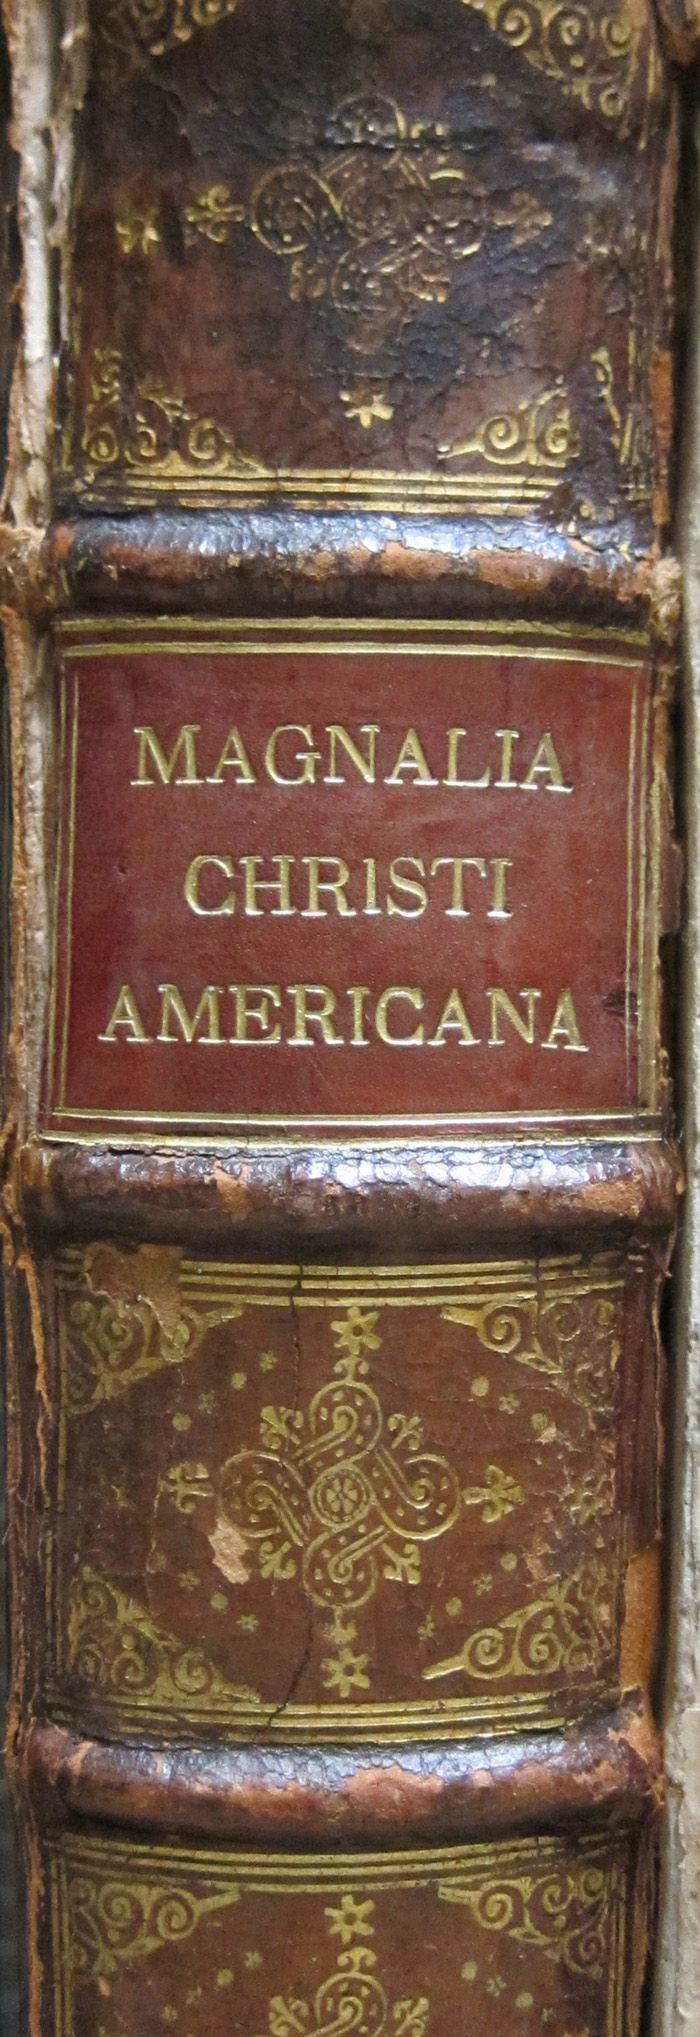 ZSR | Special Collections & Archives Blog – Magnalia Christi Americana, by Cotton Mather (1702)